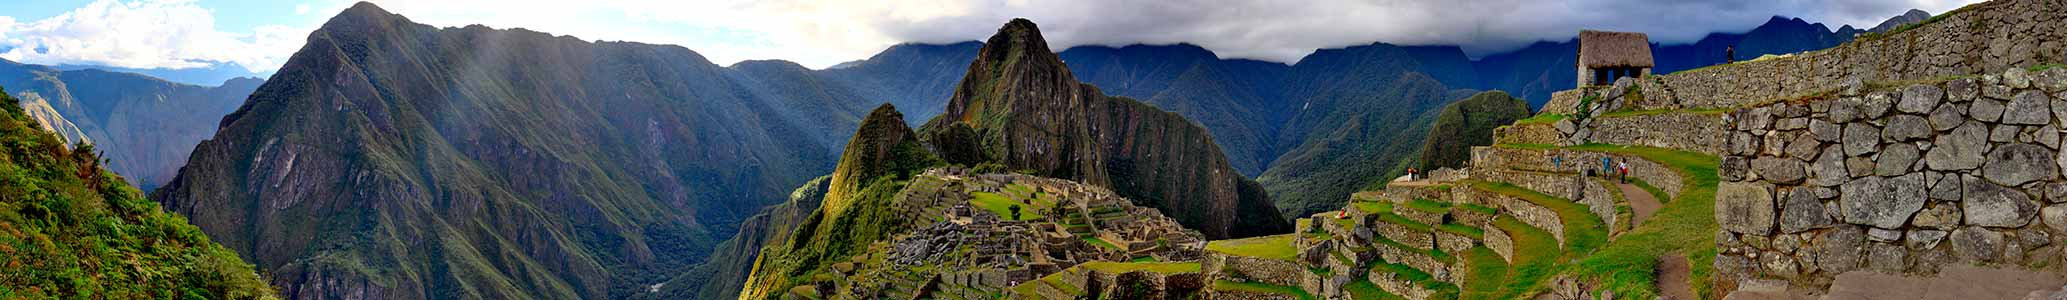 Tour in Cusco 3 Days / 2 Nights